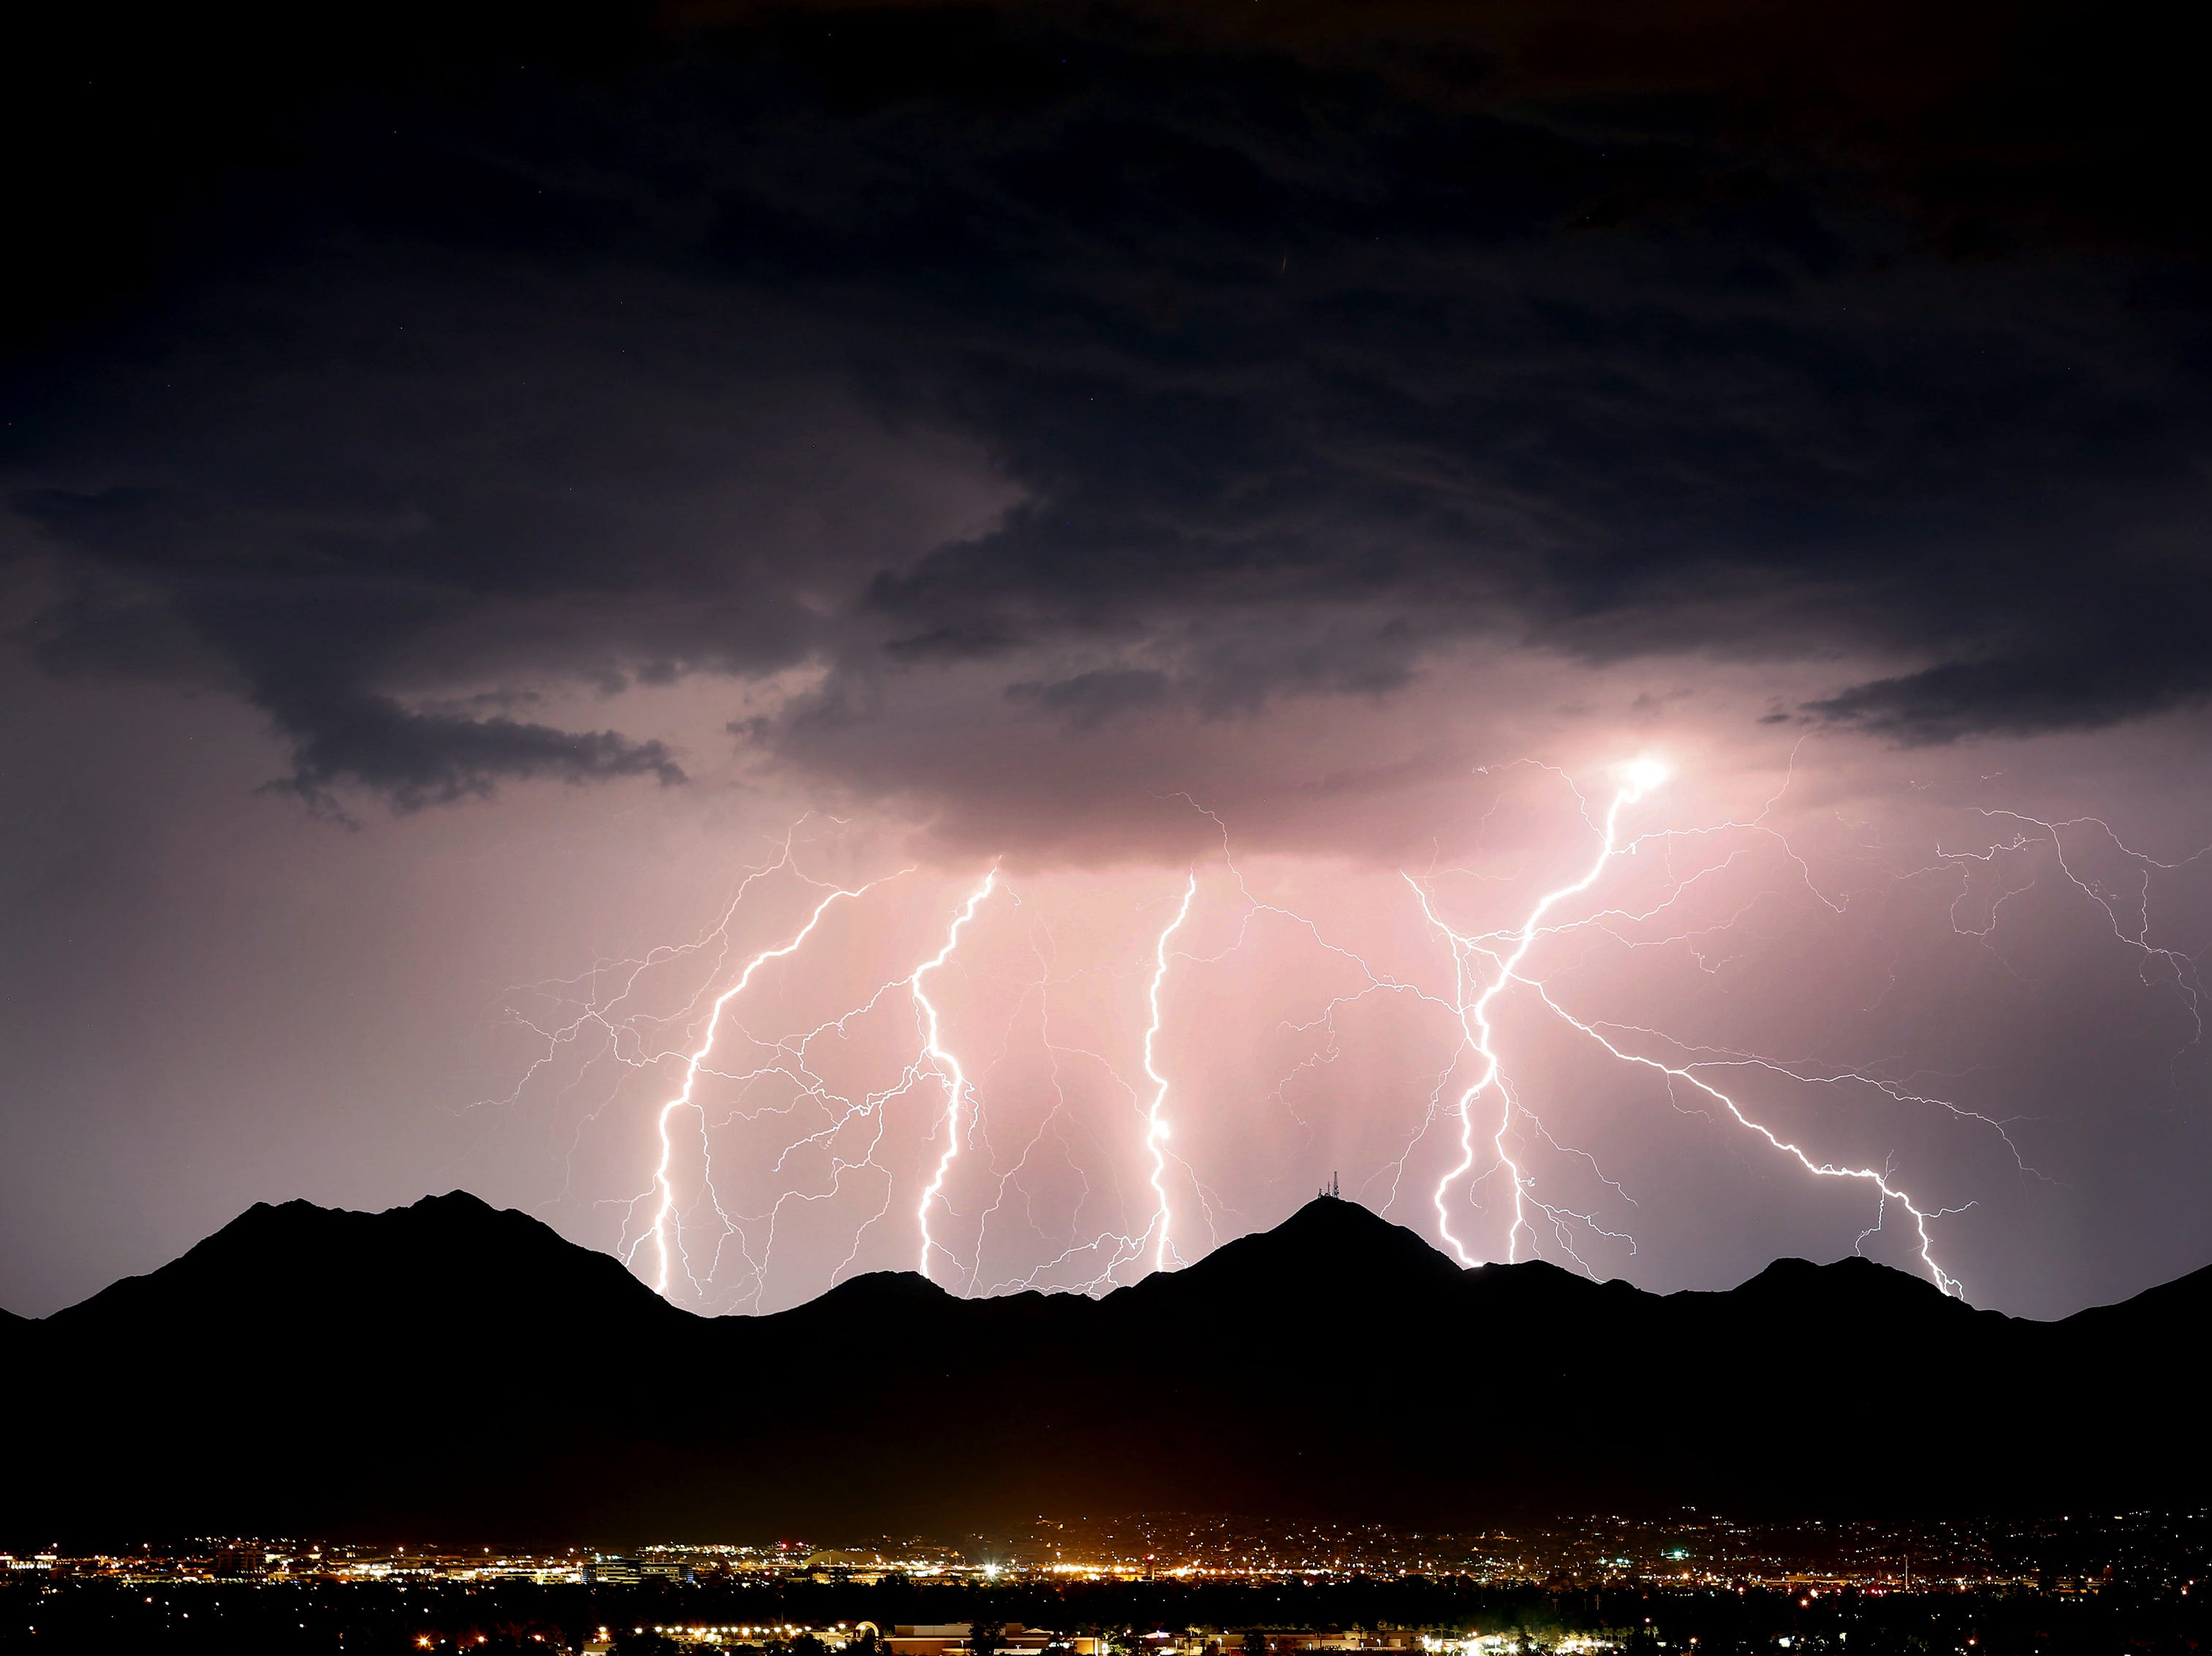 Lightning fires across the desert sky over the McDowell Mountains during a monsoon storm in Scottsdale, AZ.